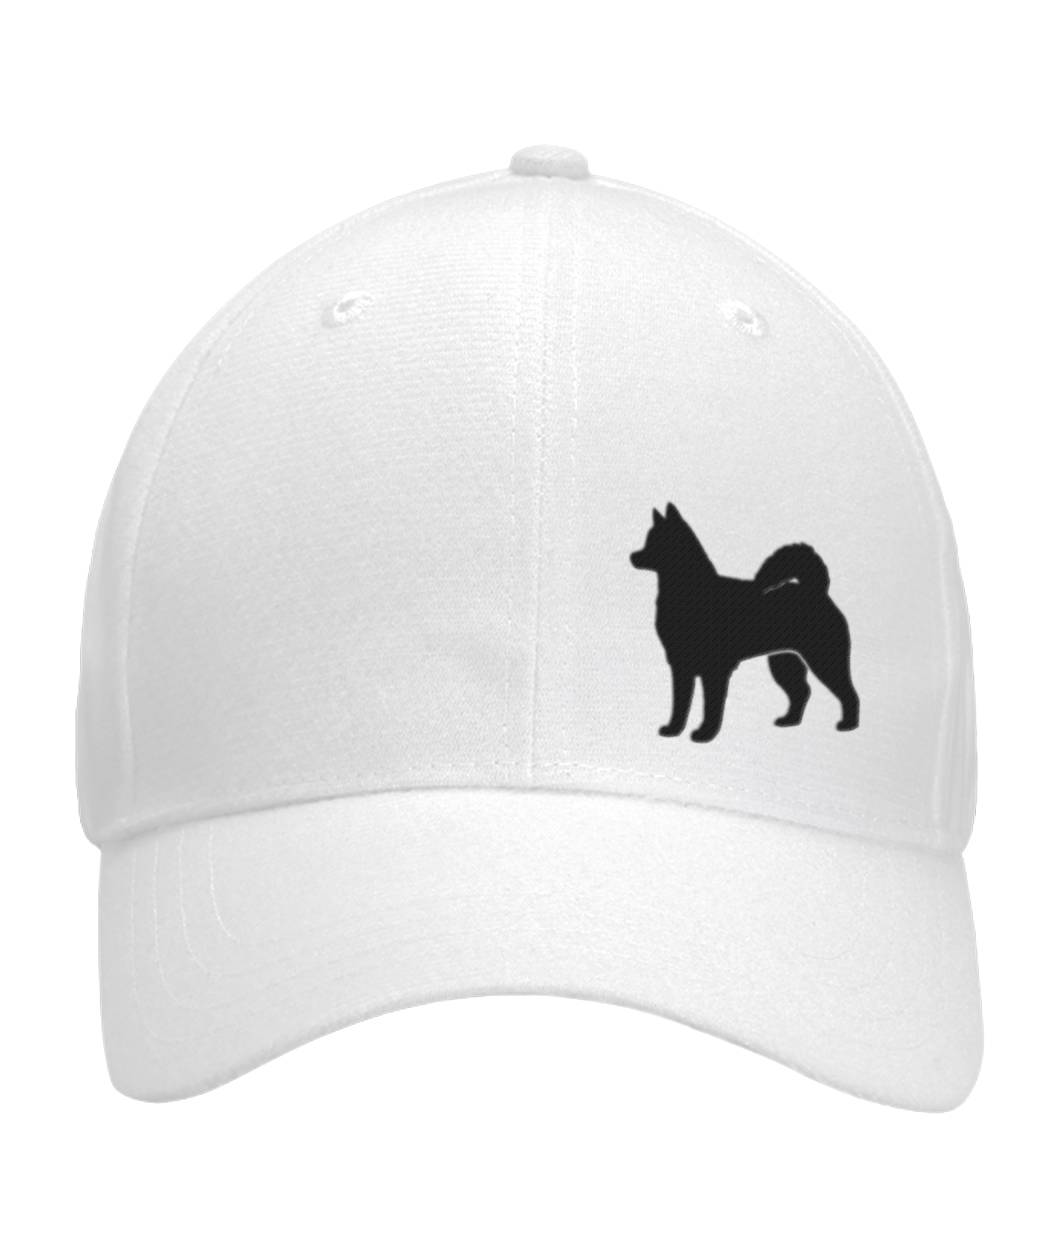 Husky, Embroidered Fitted Cap